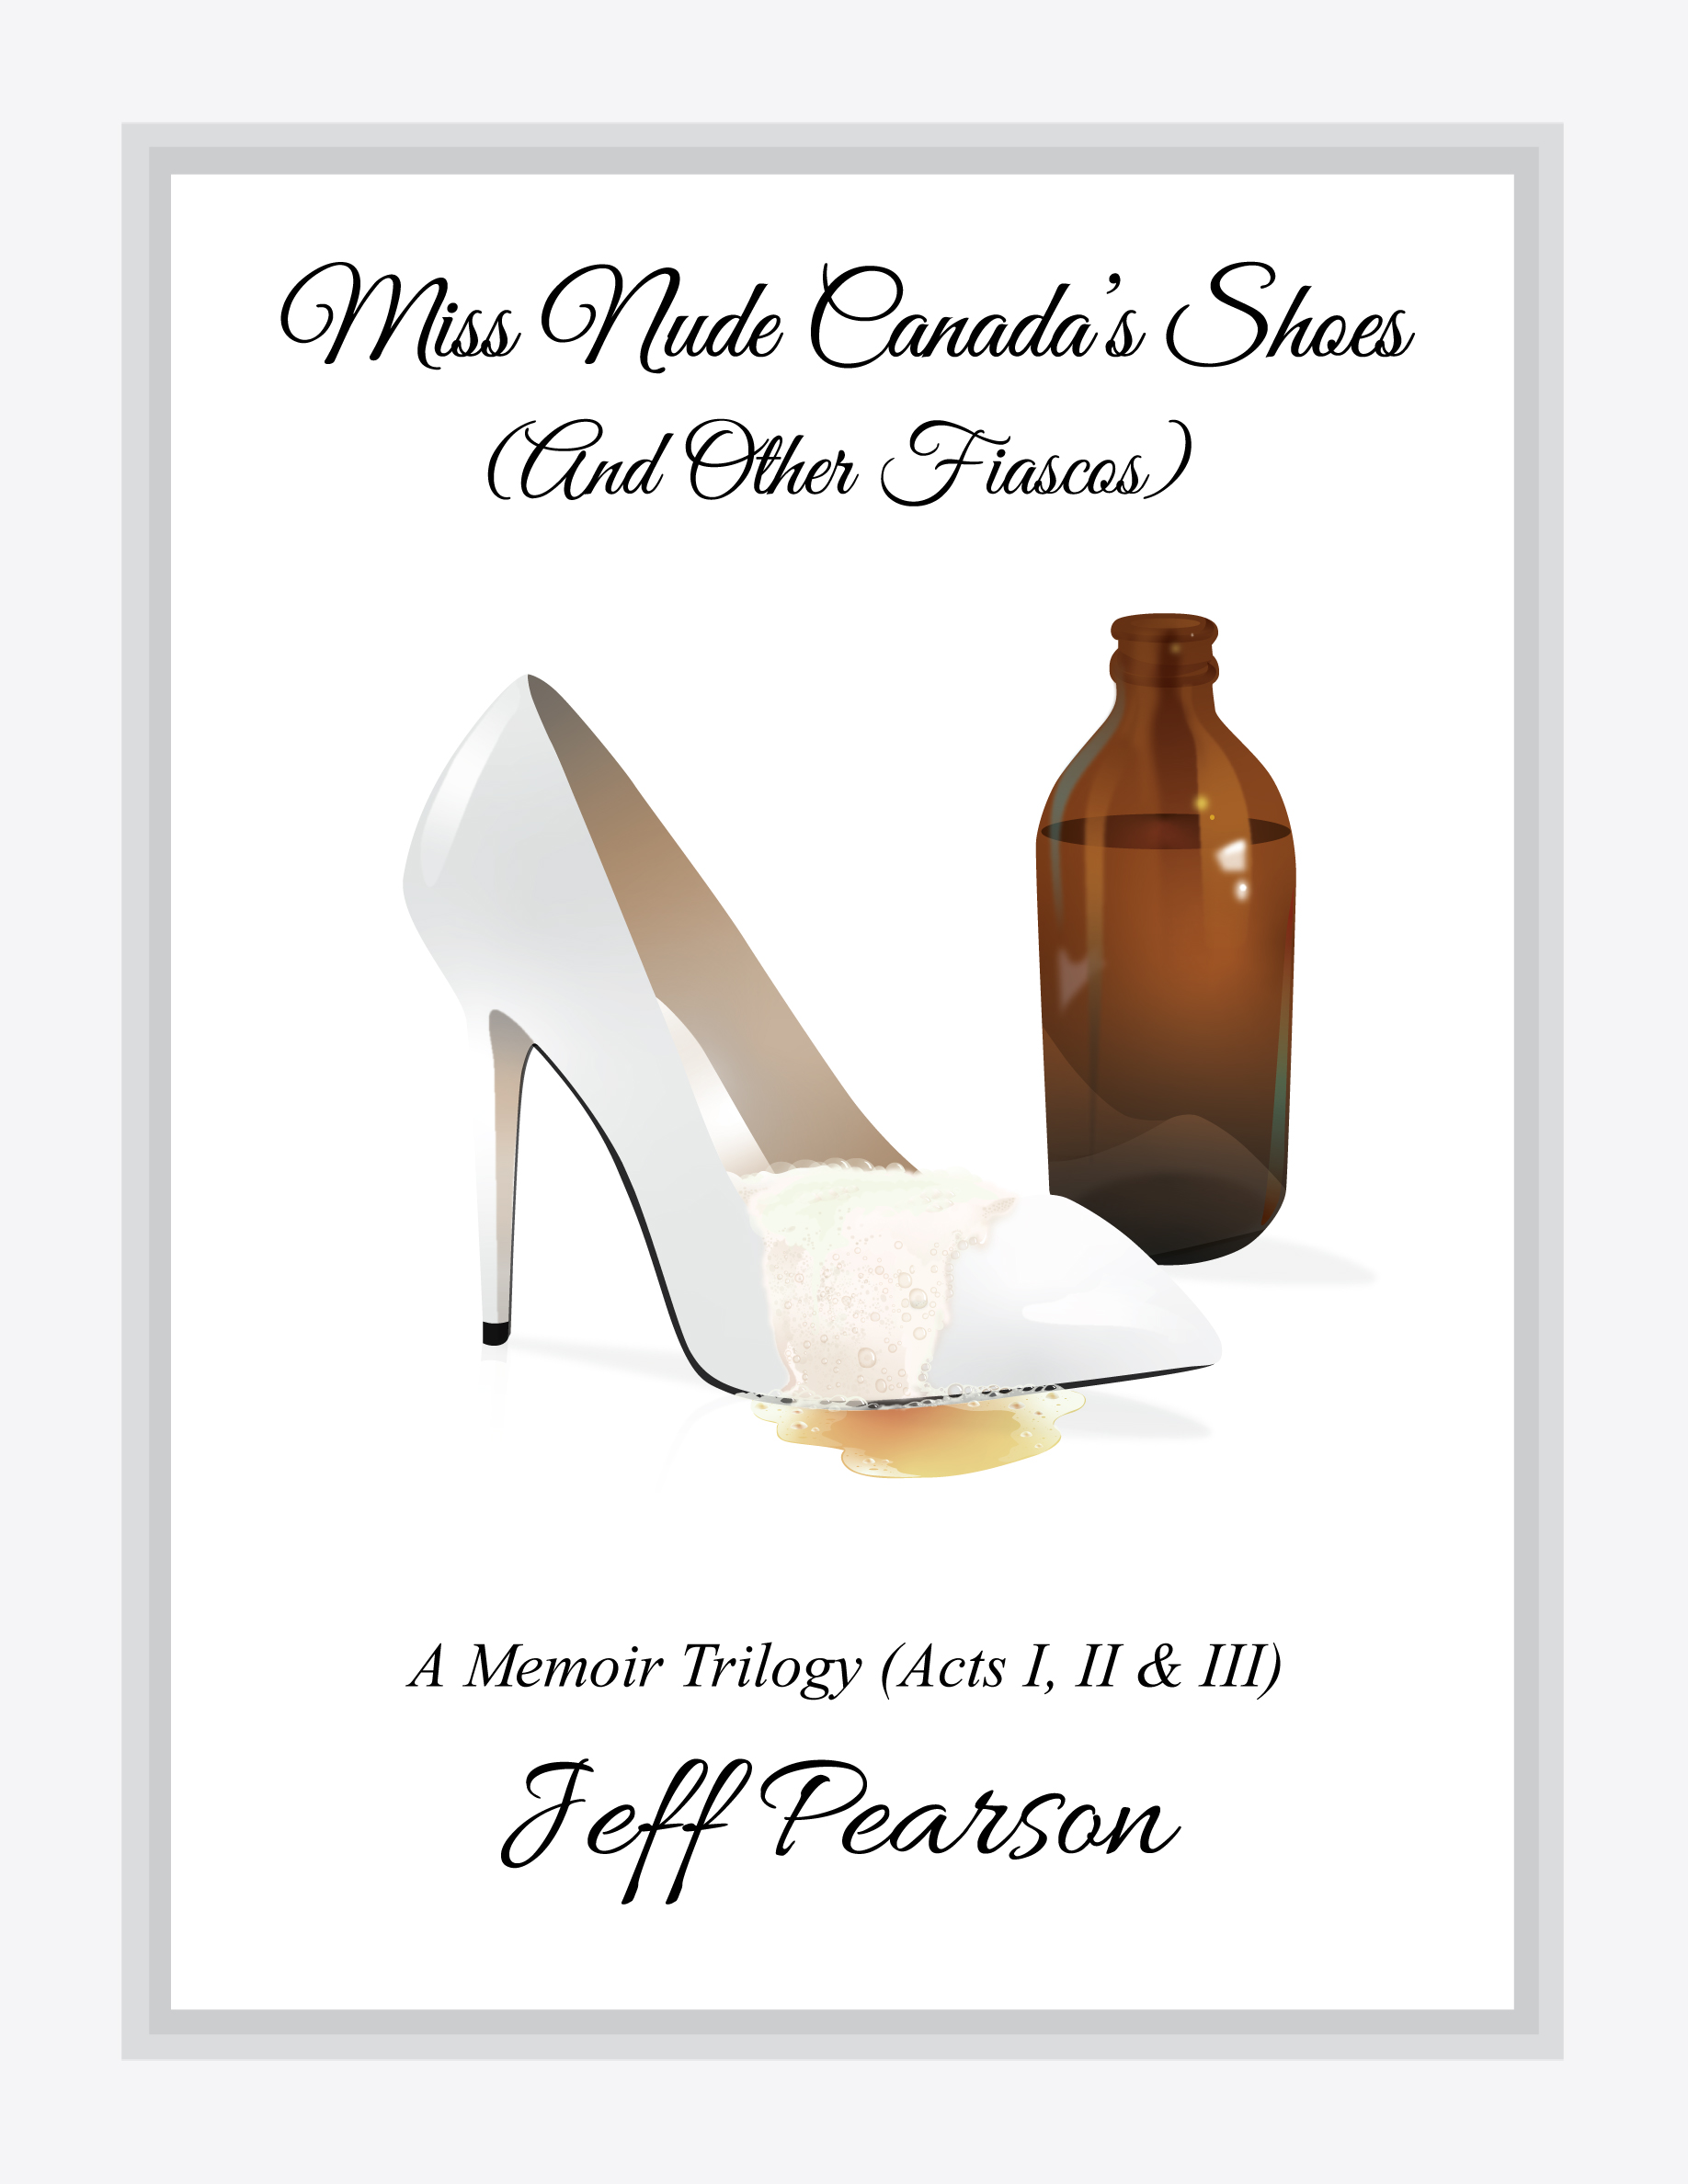 Jeff Pearson memoir ebook - Miss Nude Canada's Shoes & Other Fiascos